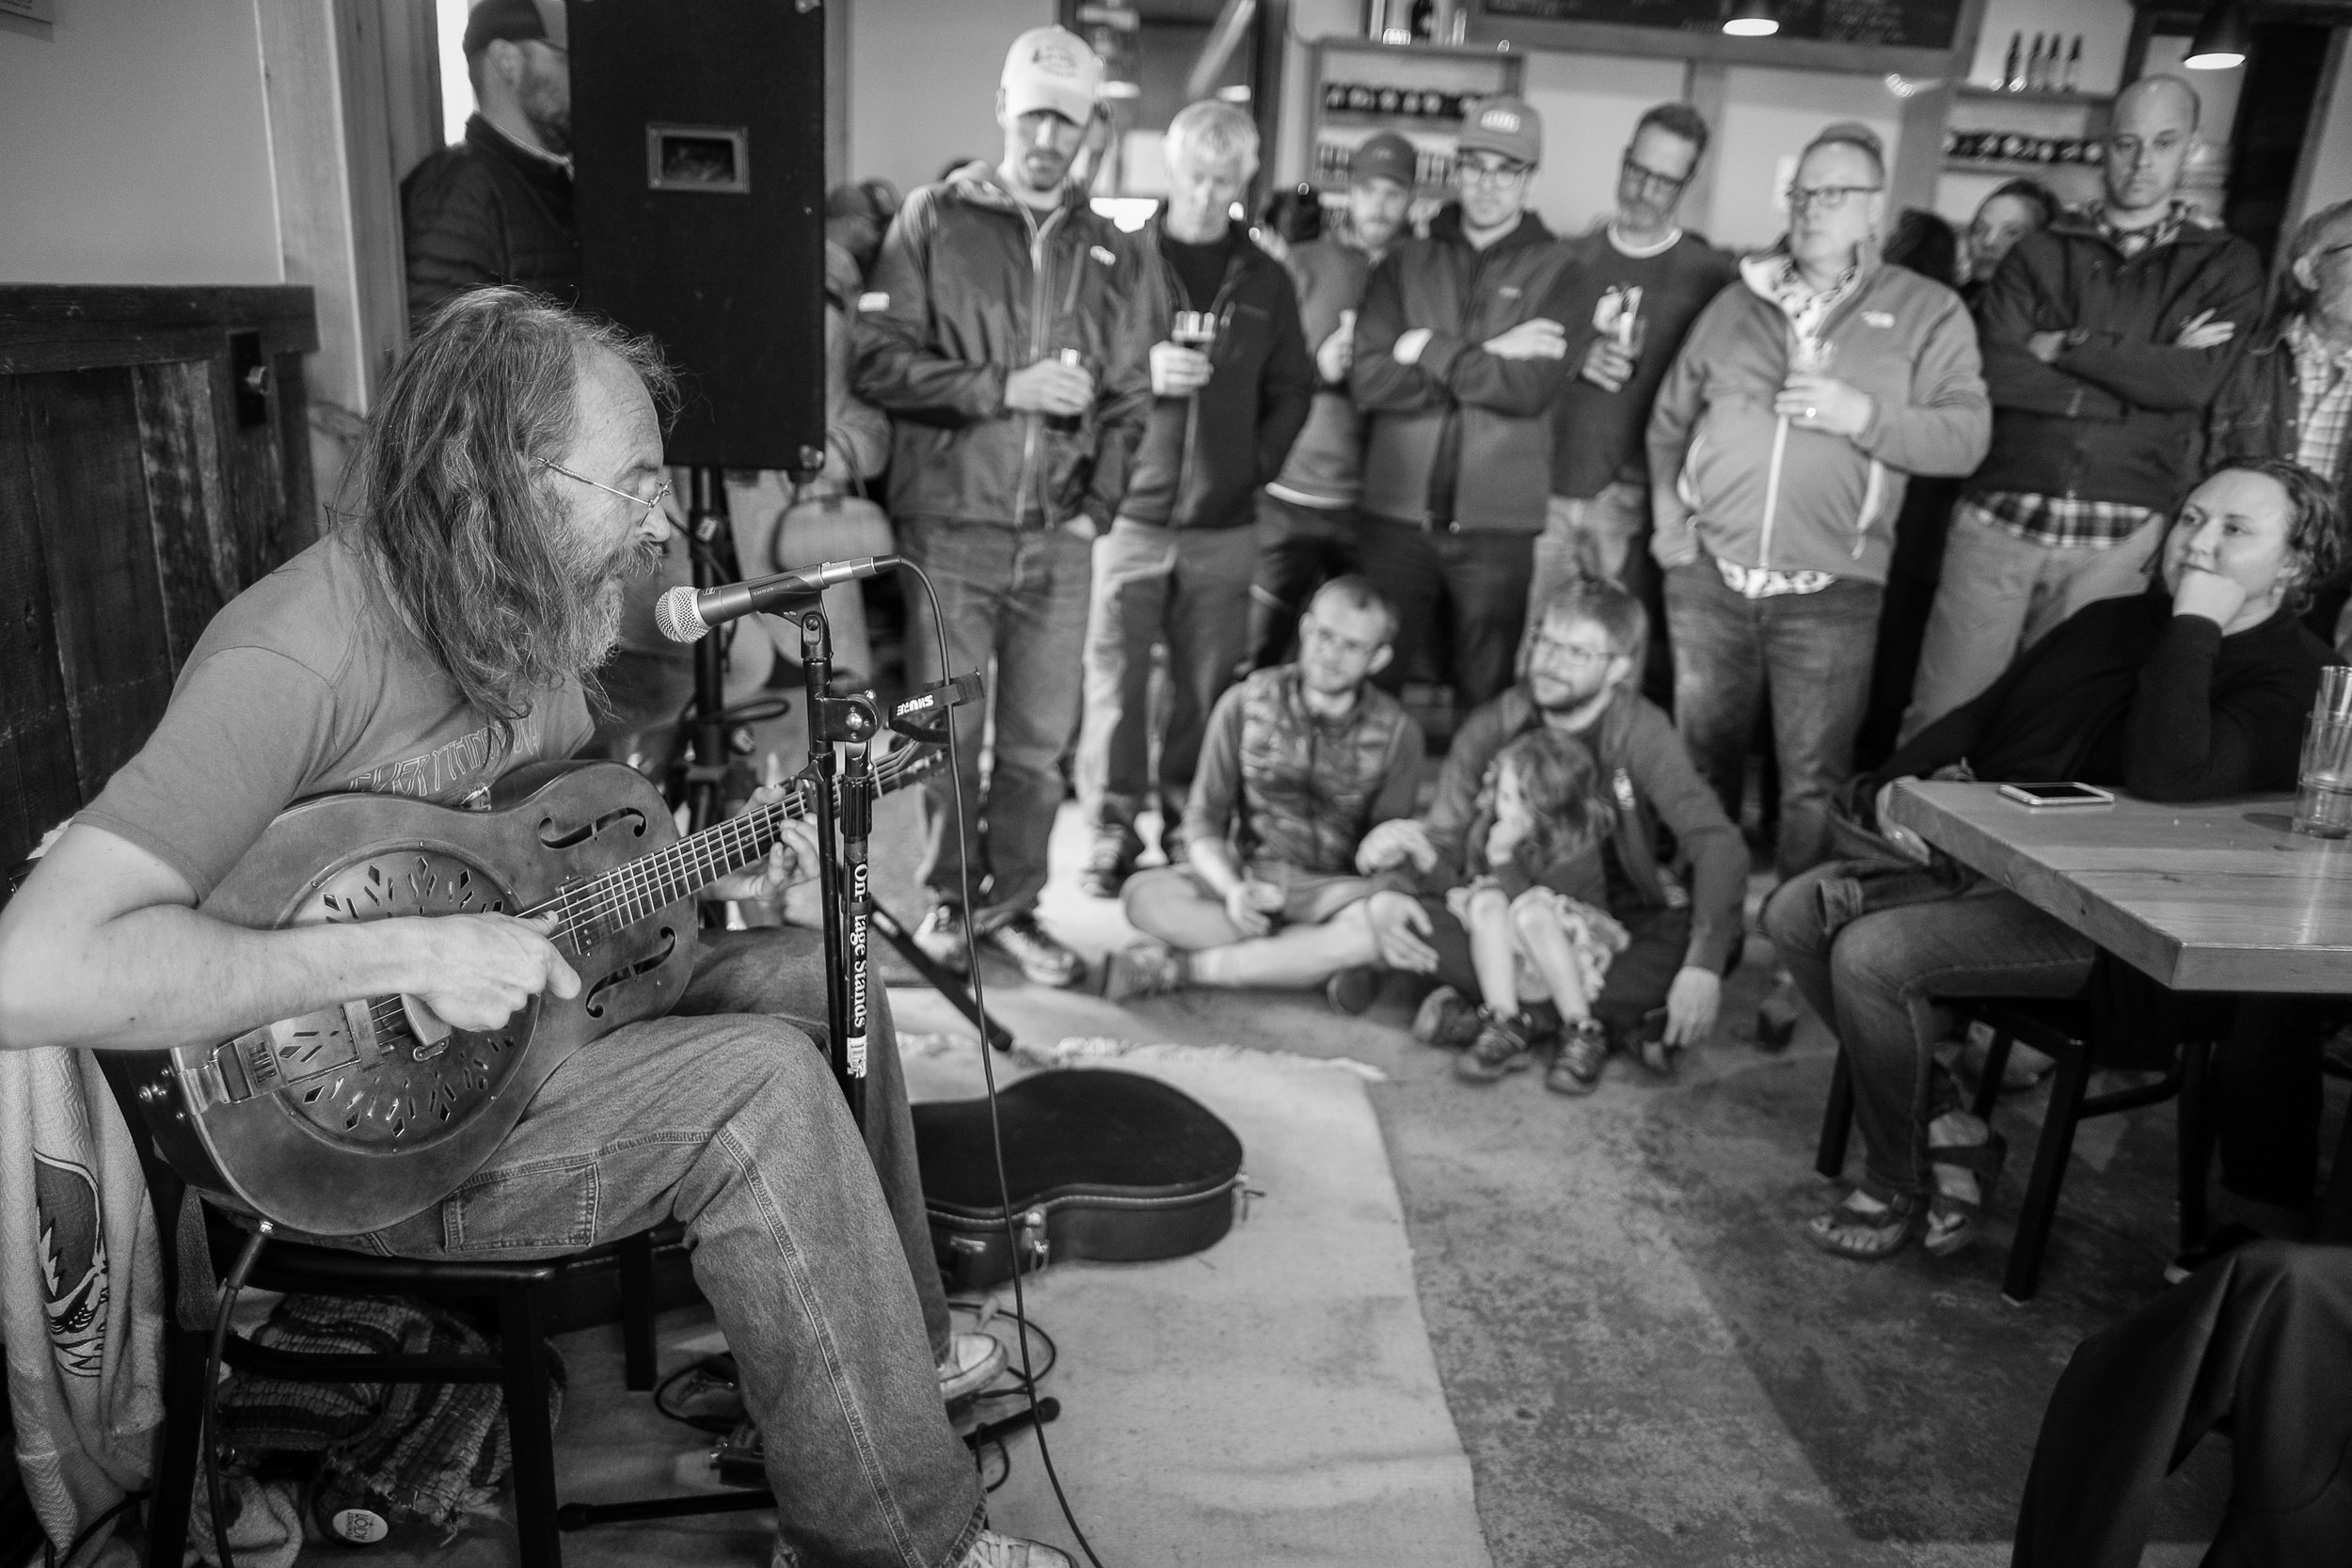 Charlie Parr at 2018 Le Grand du Nord, Voyageur Brewing Co, Grand Marais, MN. Photo: Clint Austin